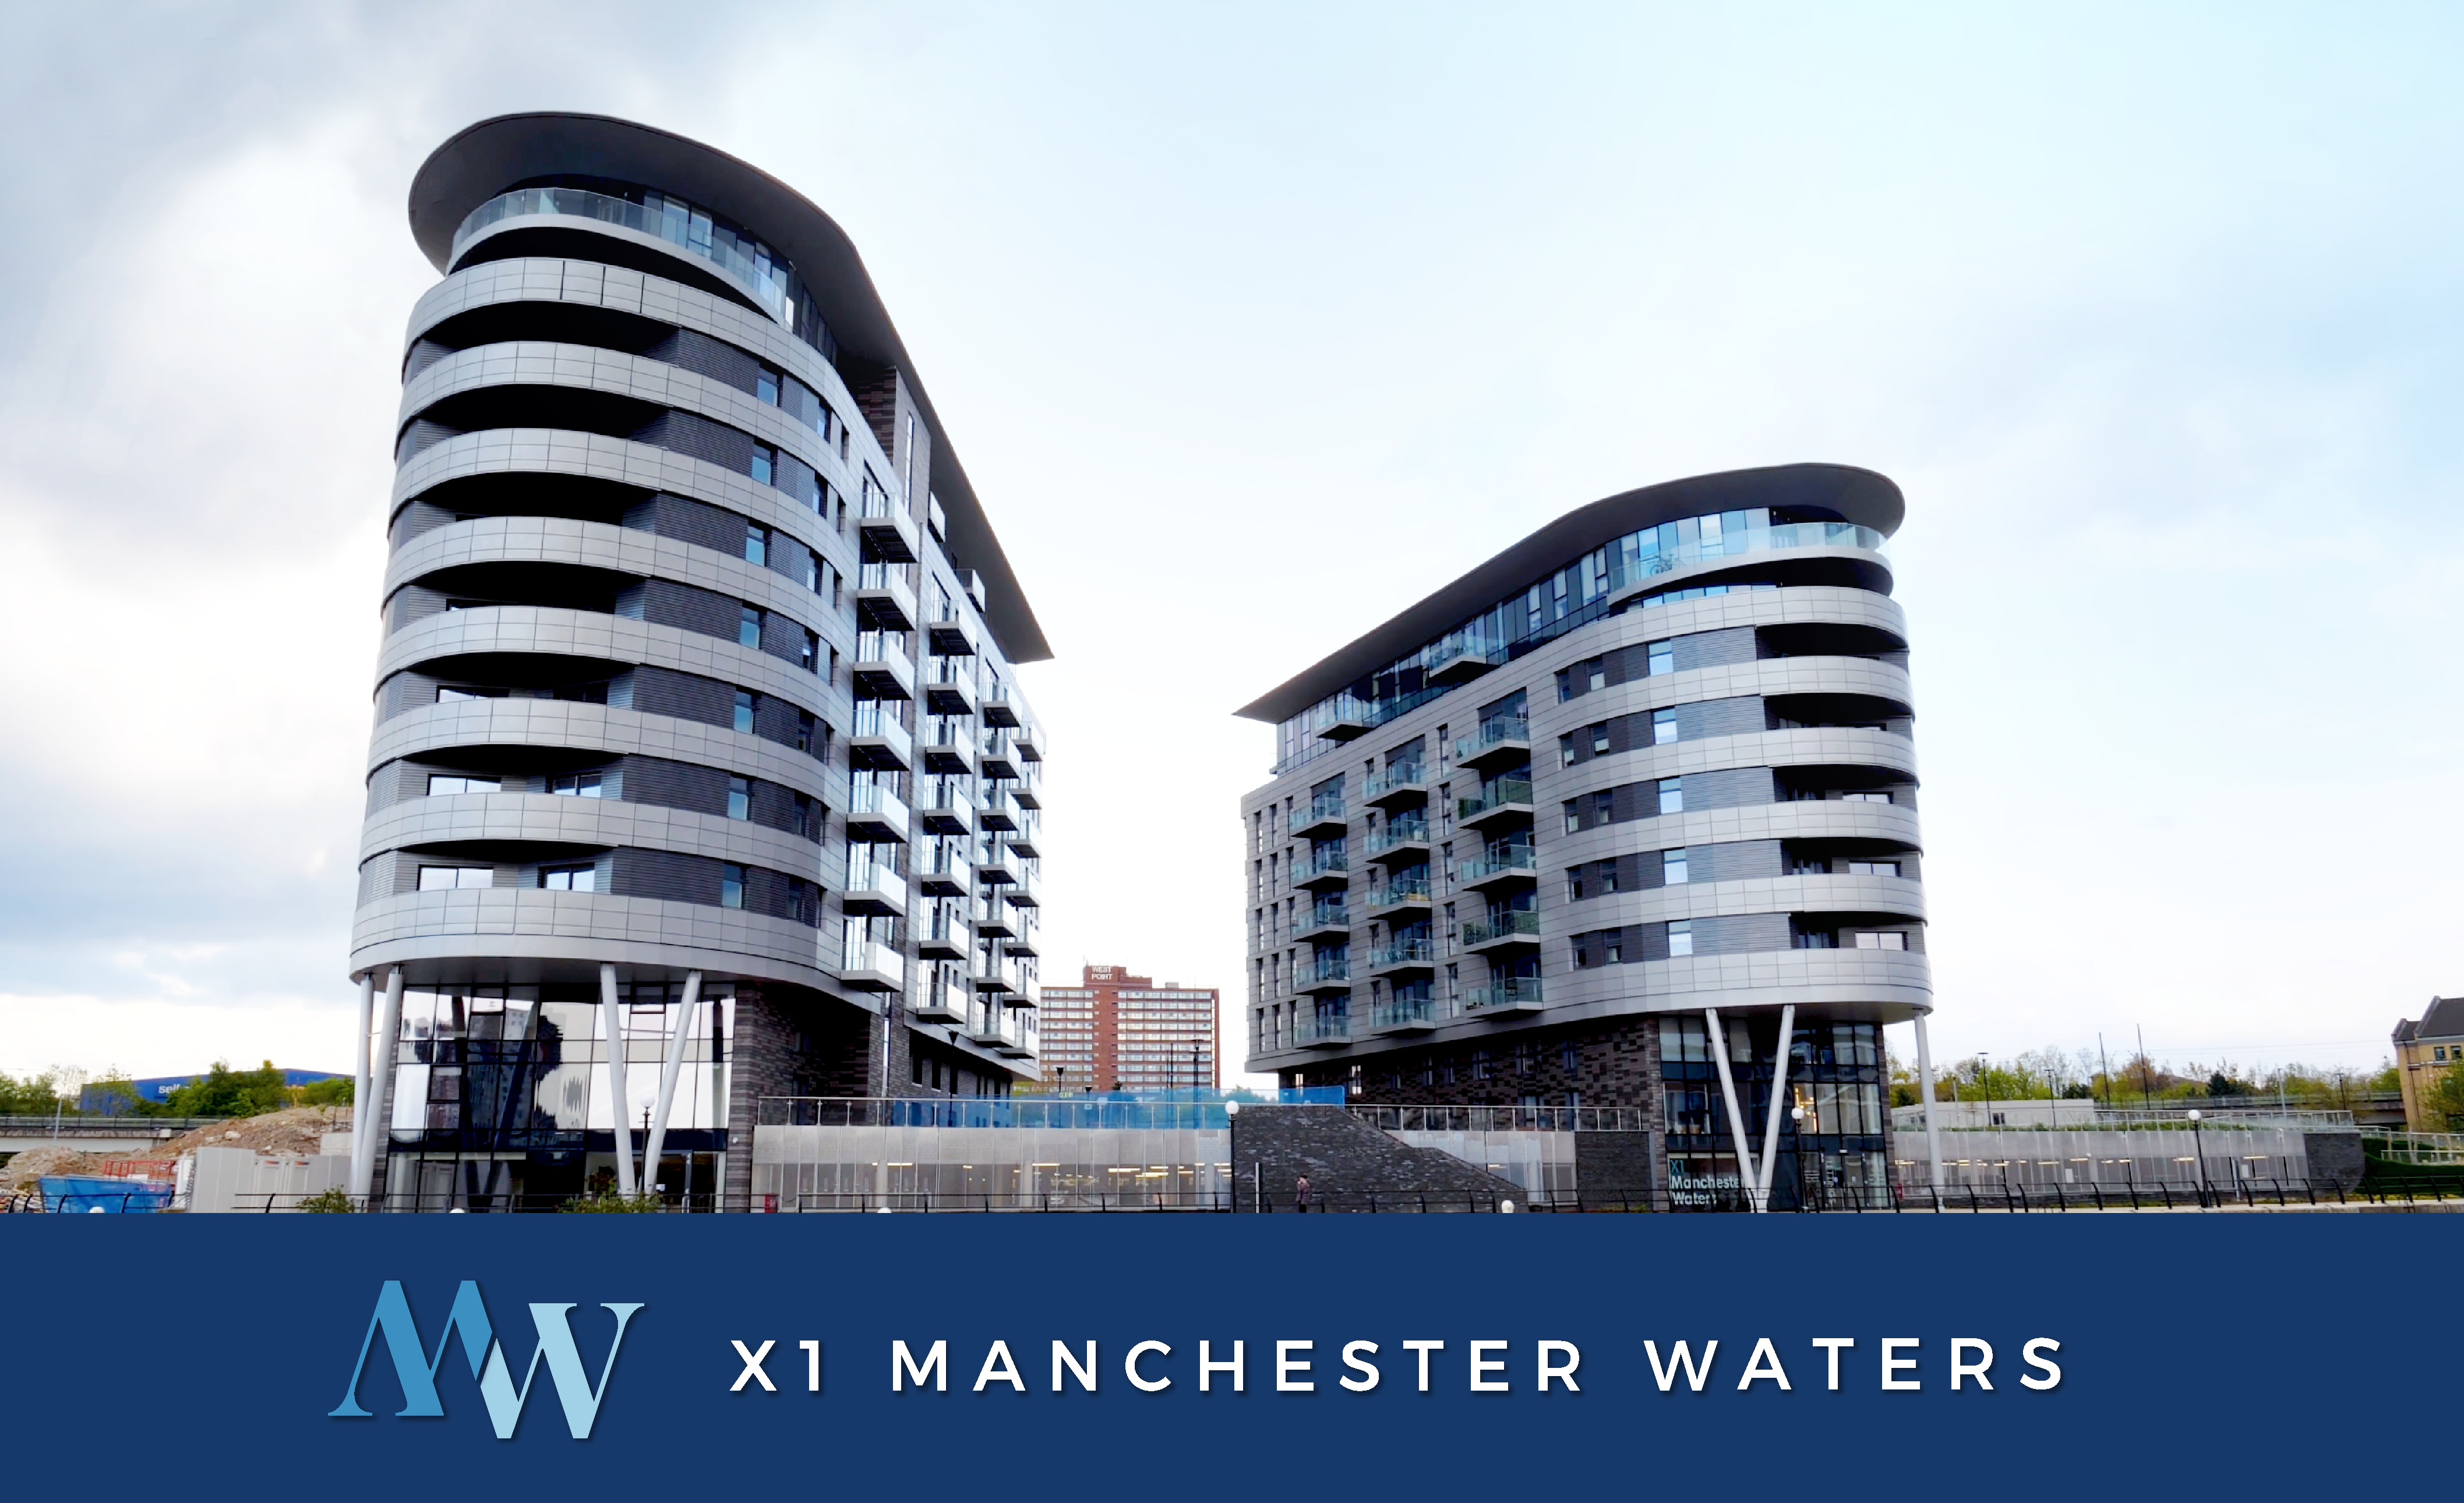 X1 Manchester Waters Tower 1 | Manchester